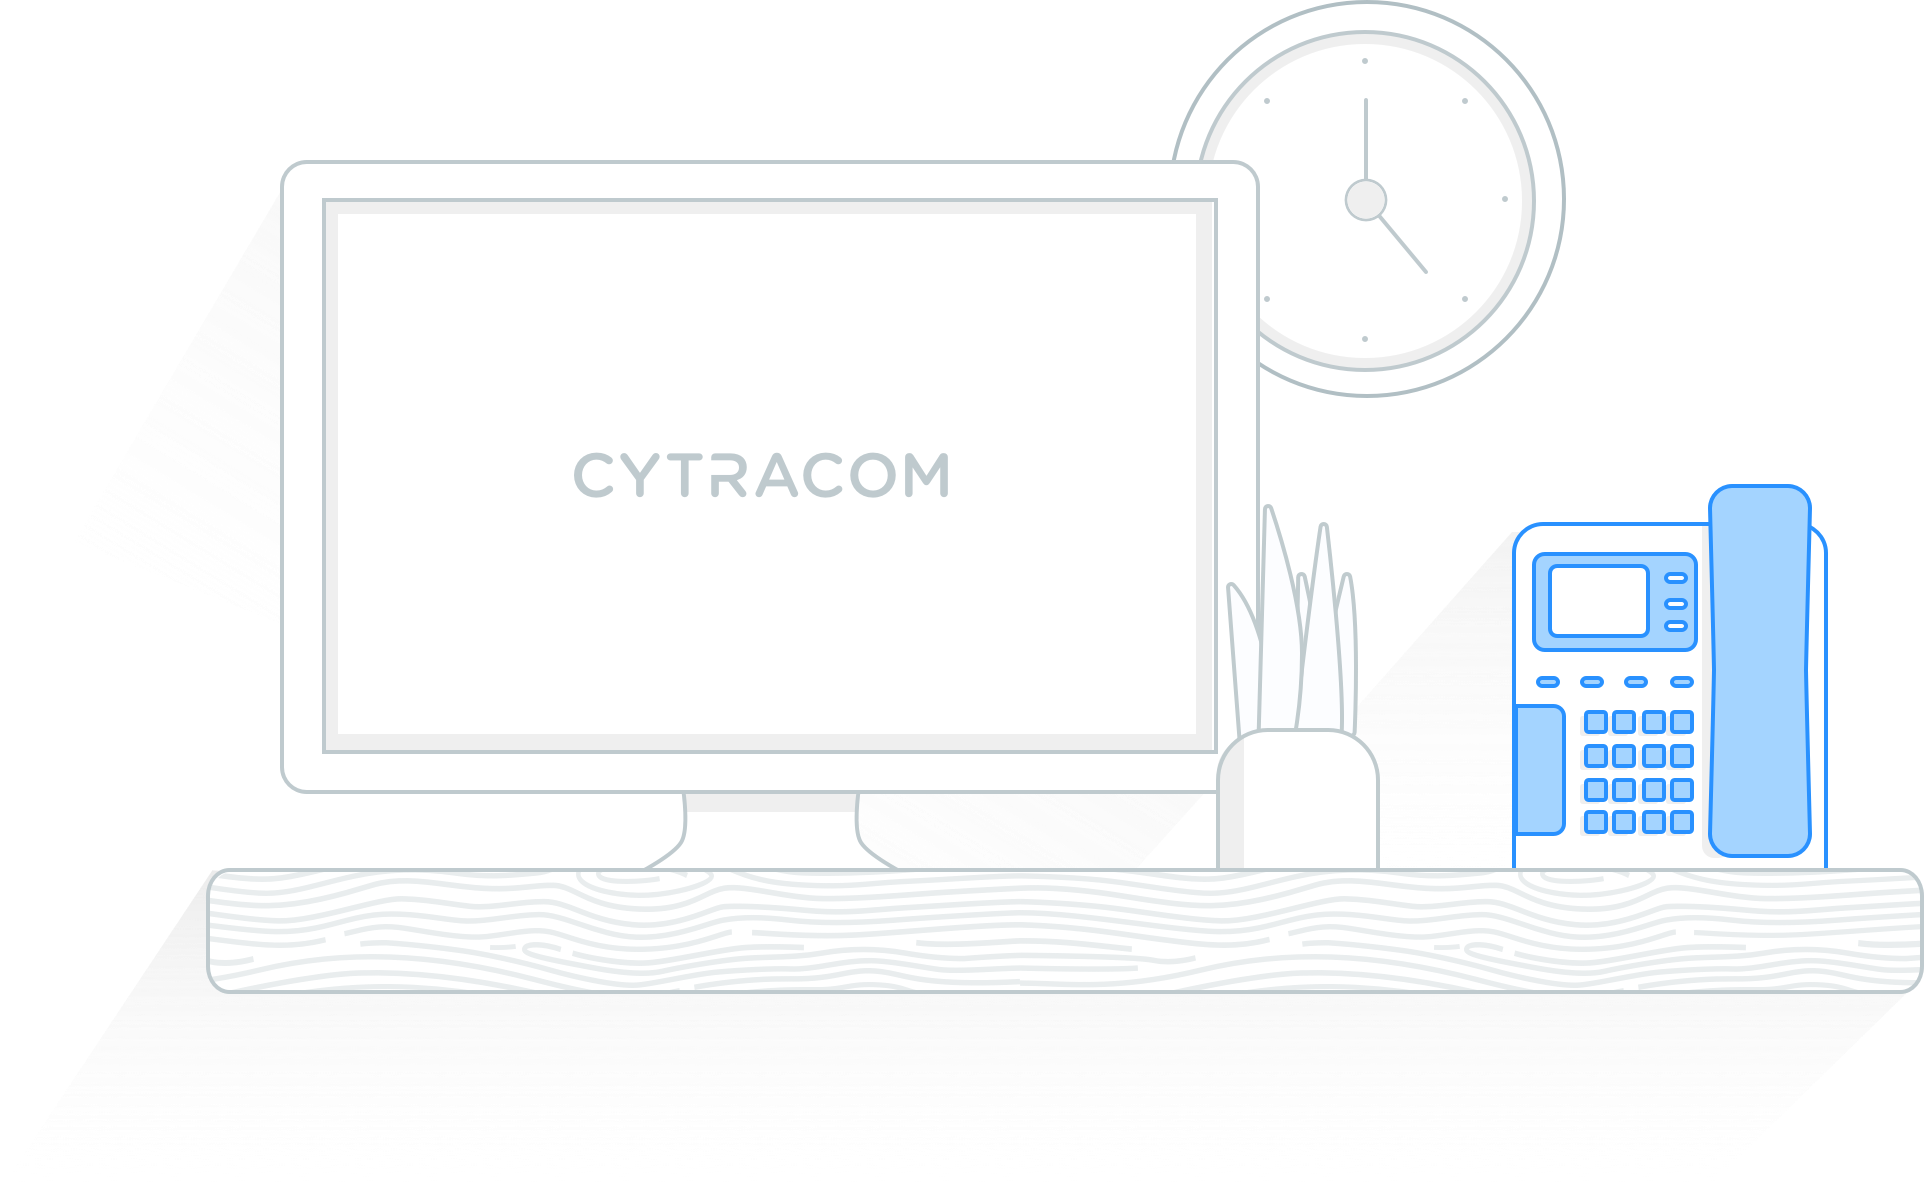 Cytracom Voice Solution